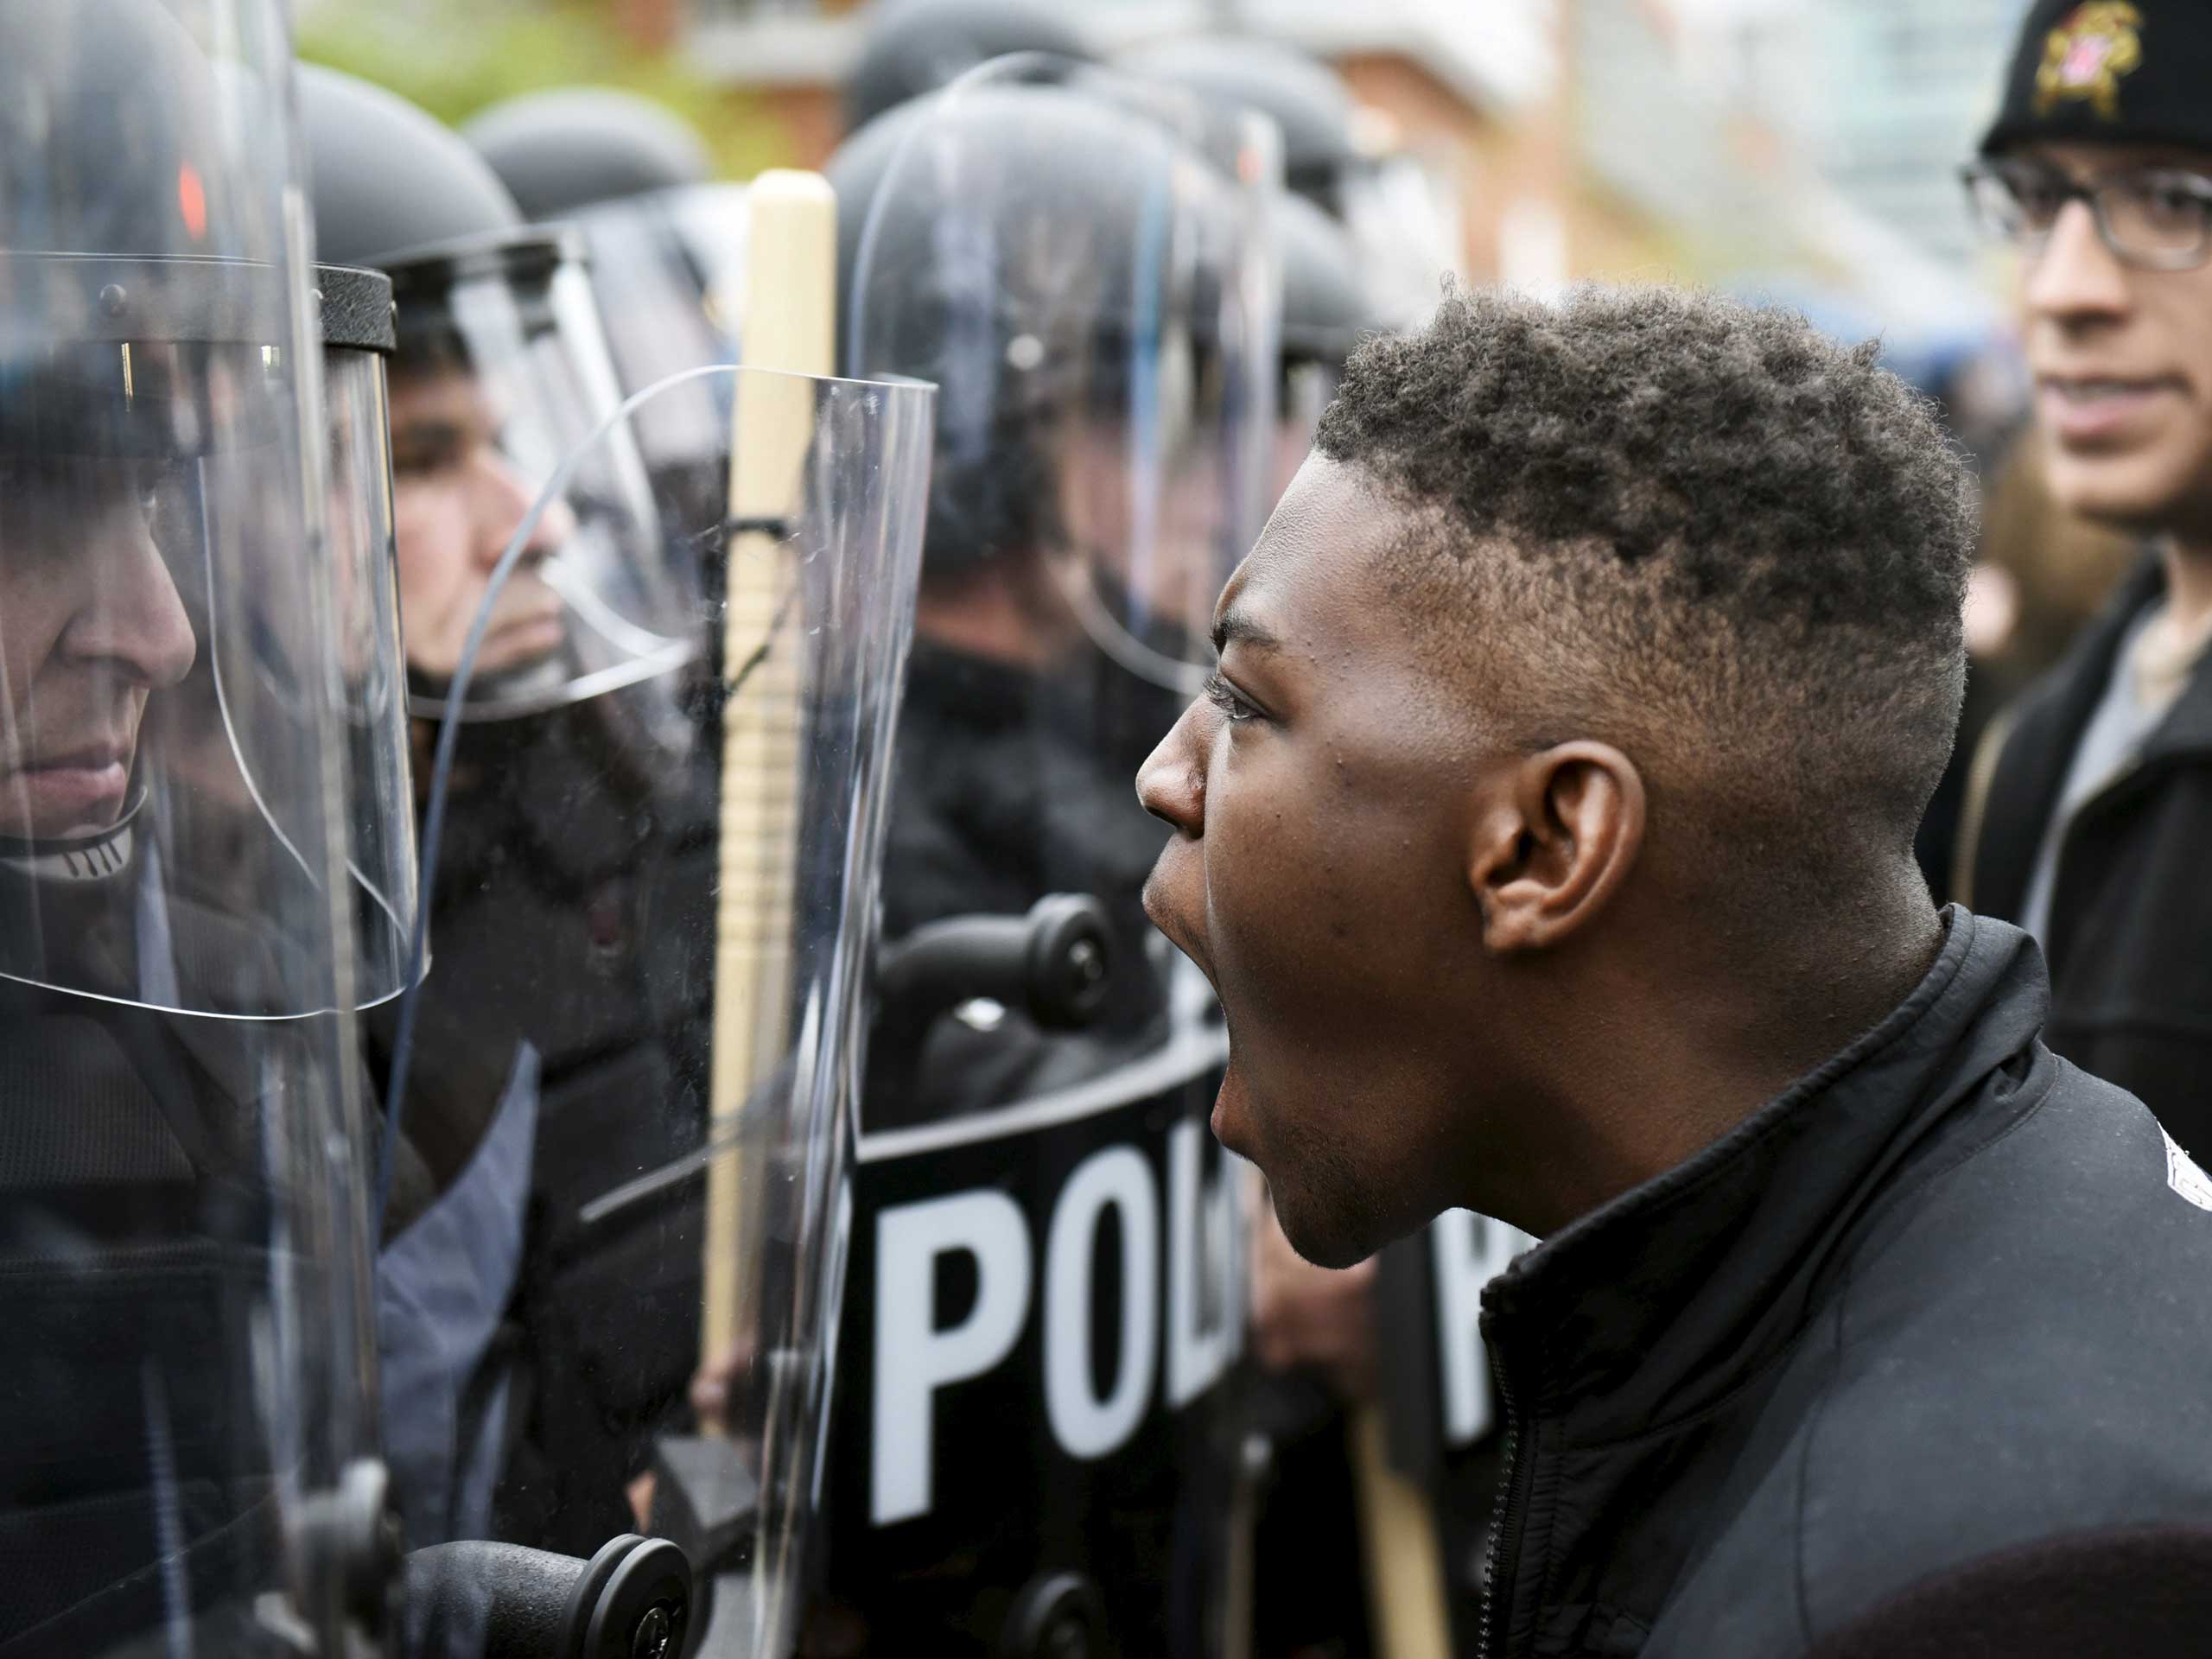 A demonstrator confronts police near Camden Yards during a protest in Baltimore on April 25, 2015.